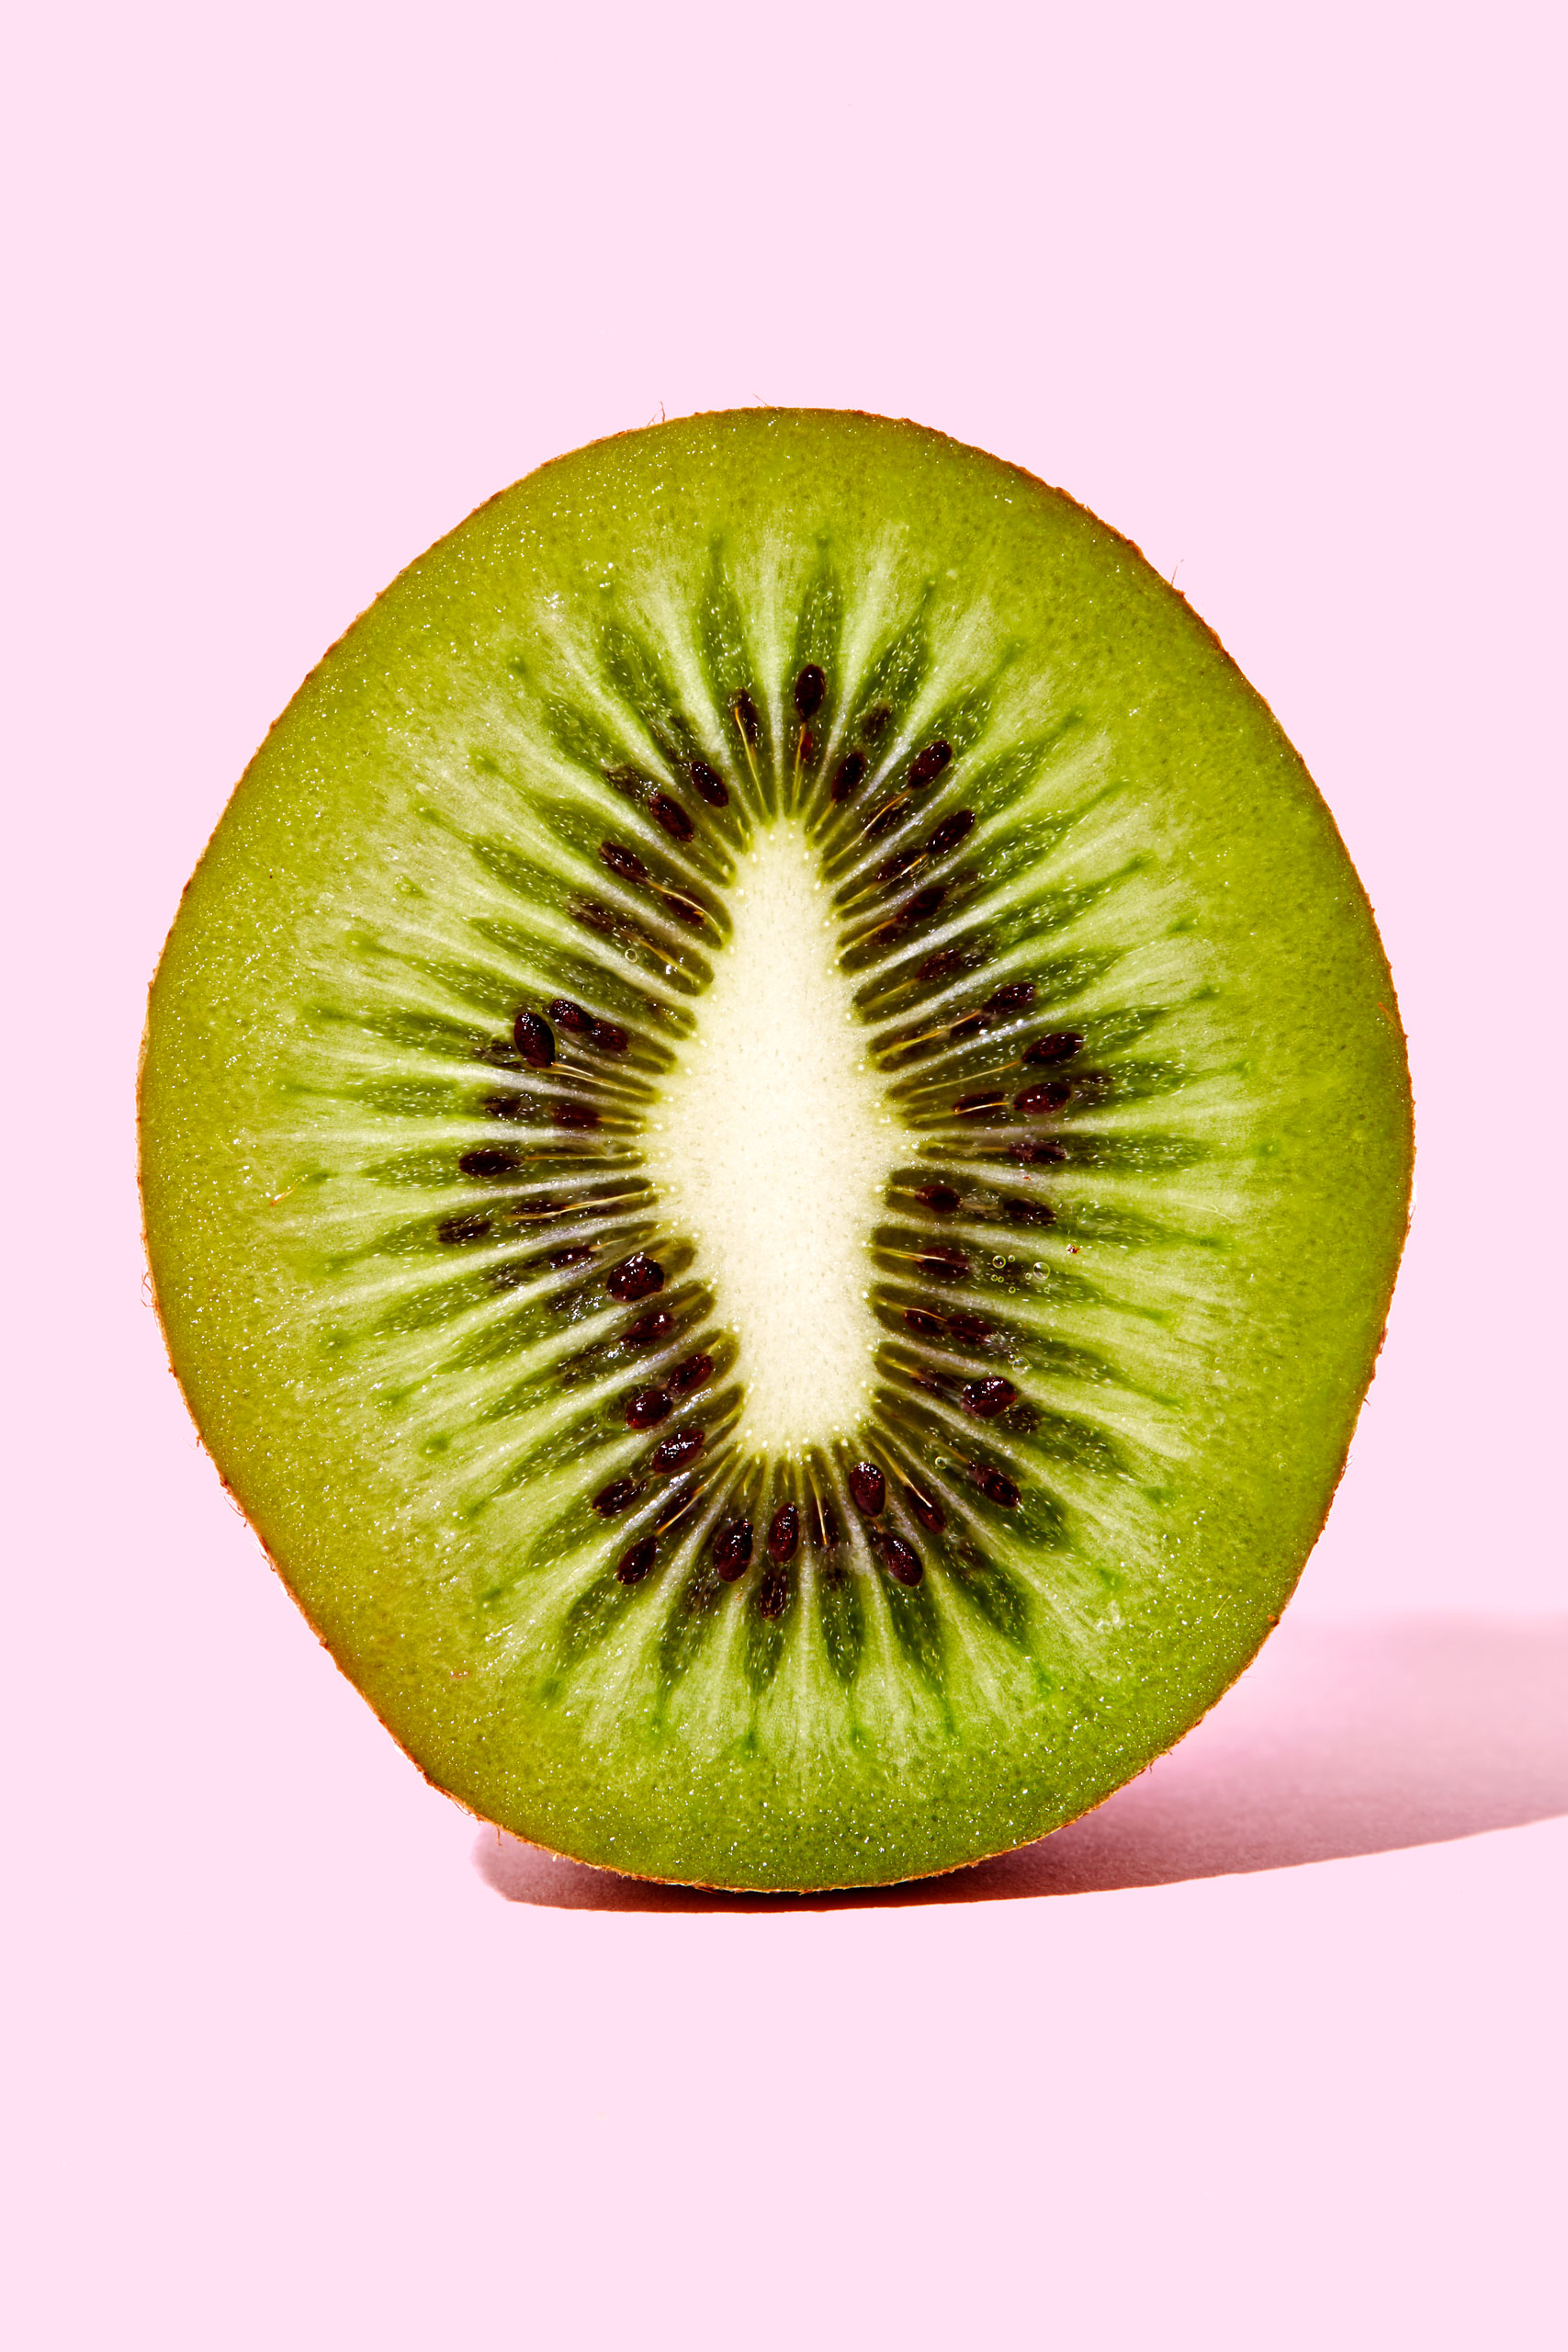 healthiest foods, health food, diet, nutrition, time.com stock, kiwi, fruit